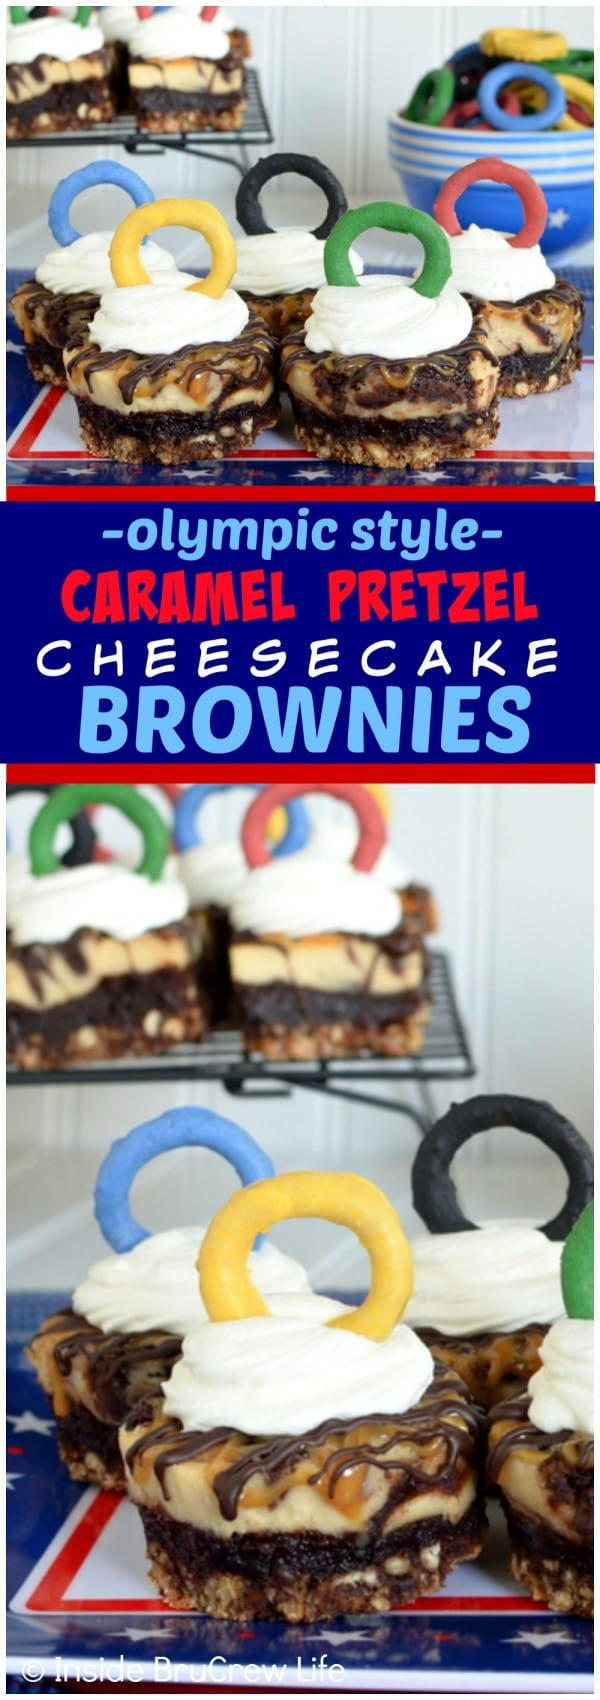 Caramel Pretzel Cheesecake Brownies - the sweet and salty layers in these brownies will have you reaching for more! Great dessert recipe!